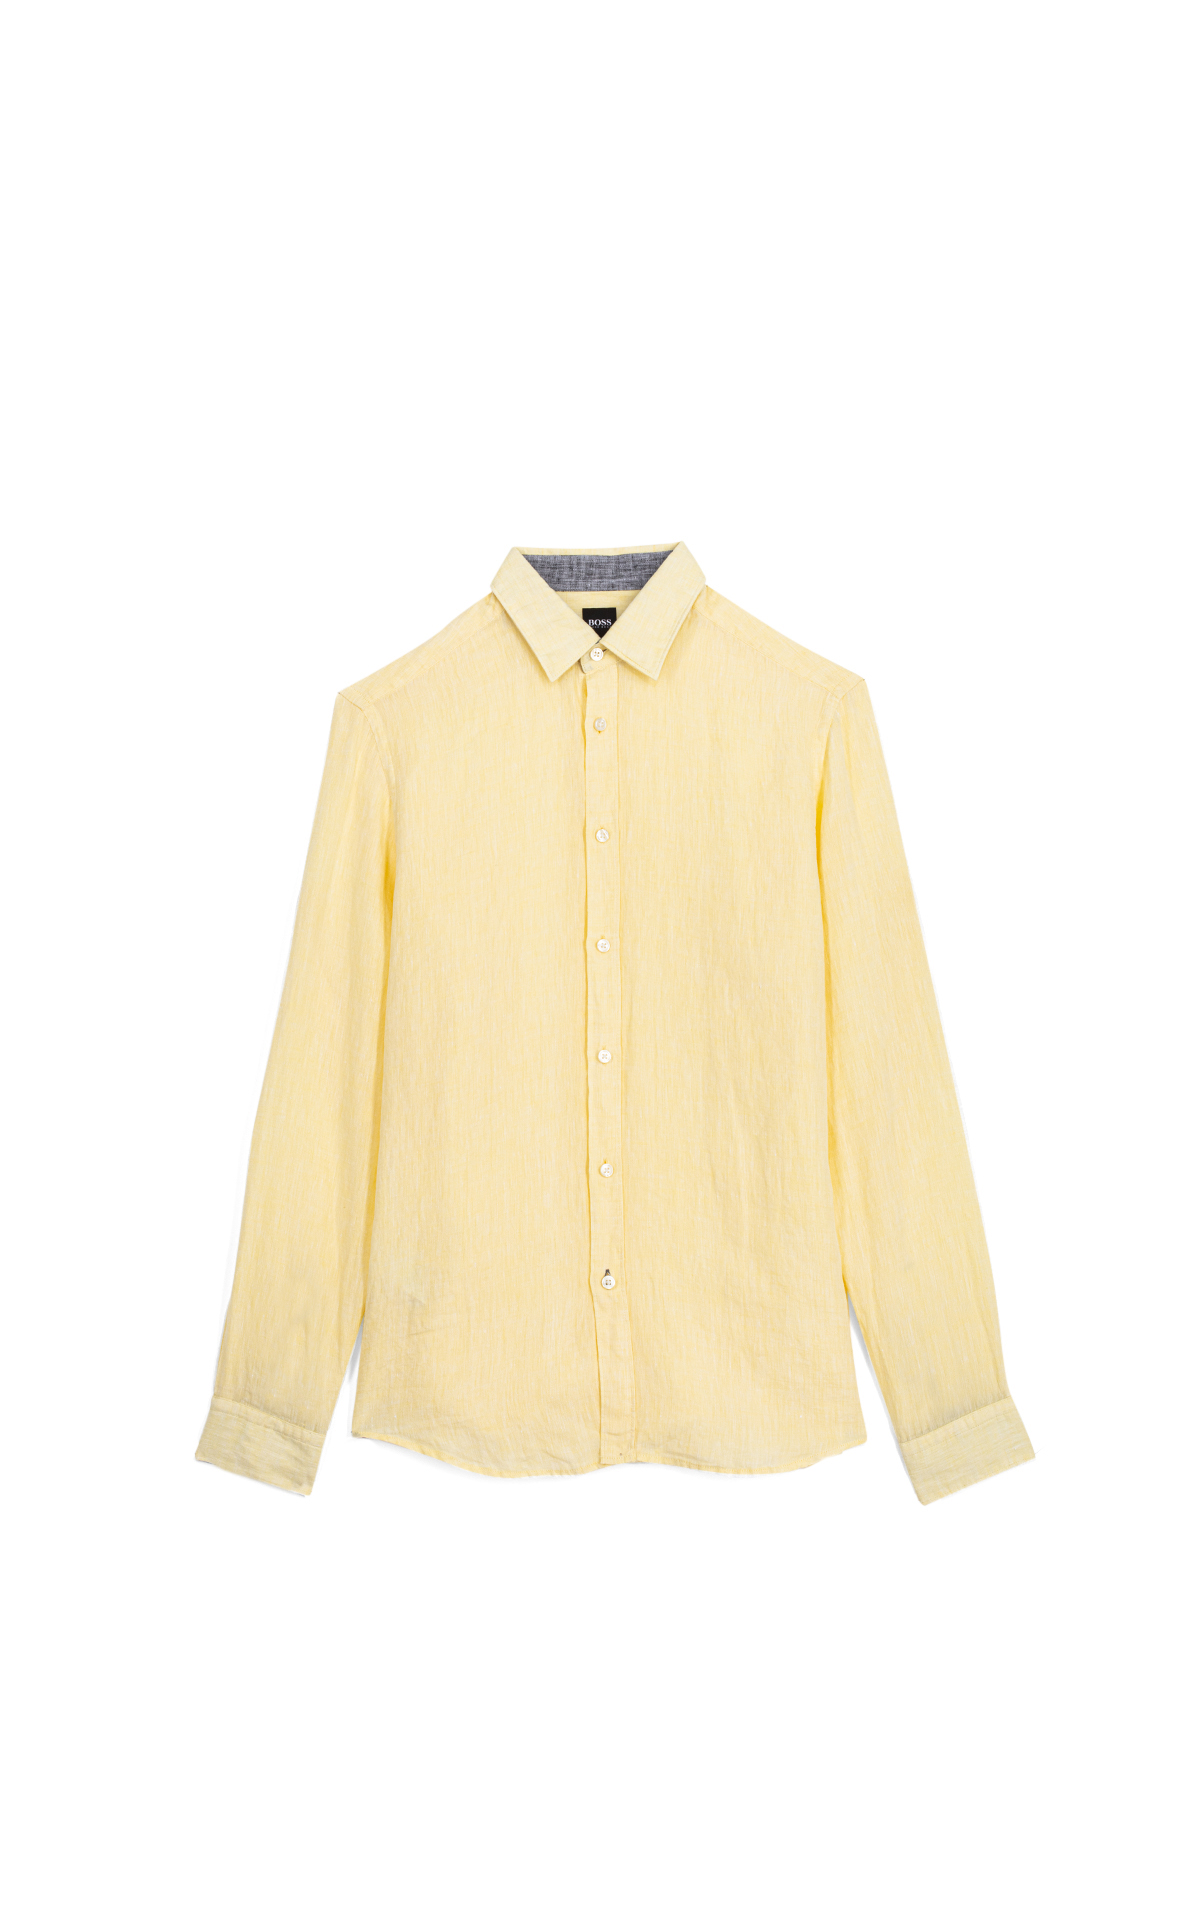 Hugo Boss Yellow shirt*